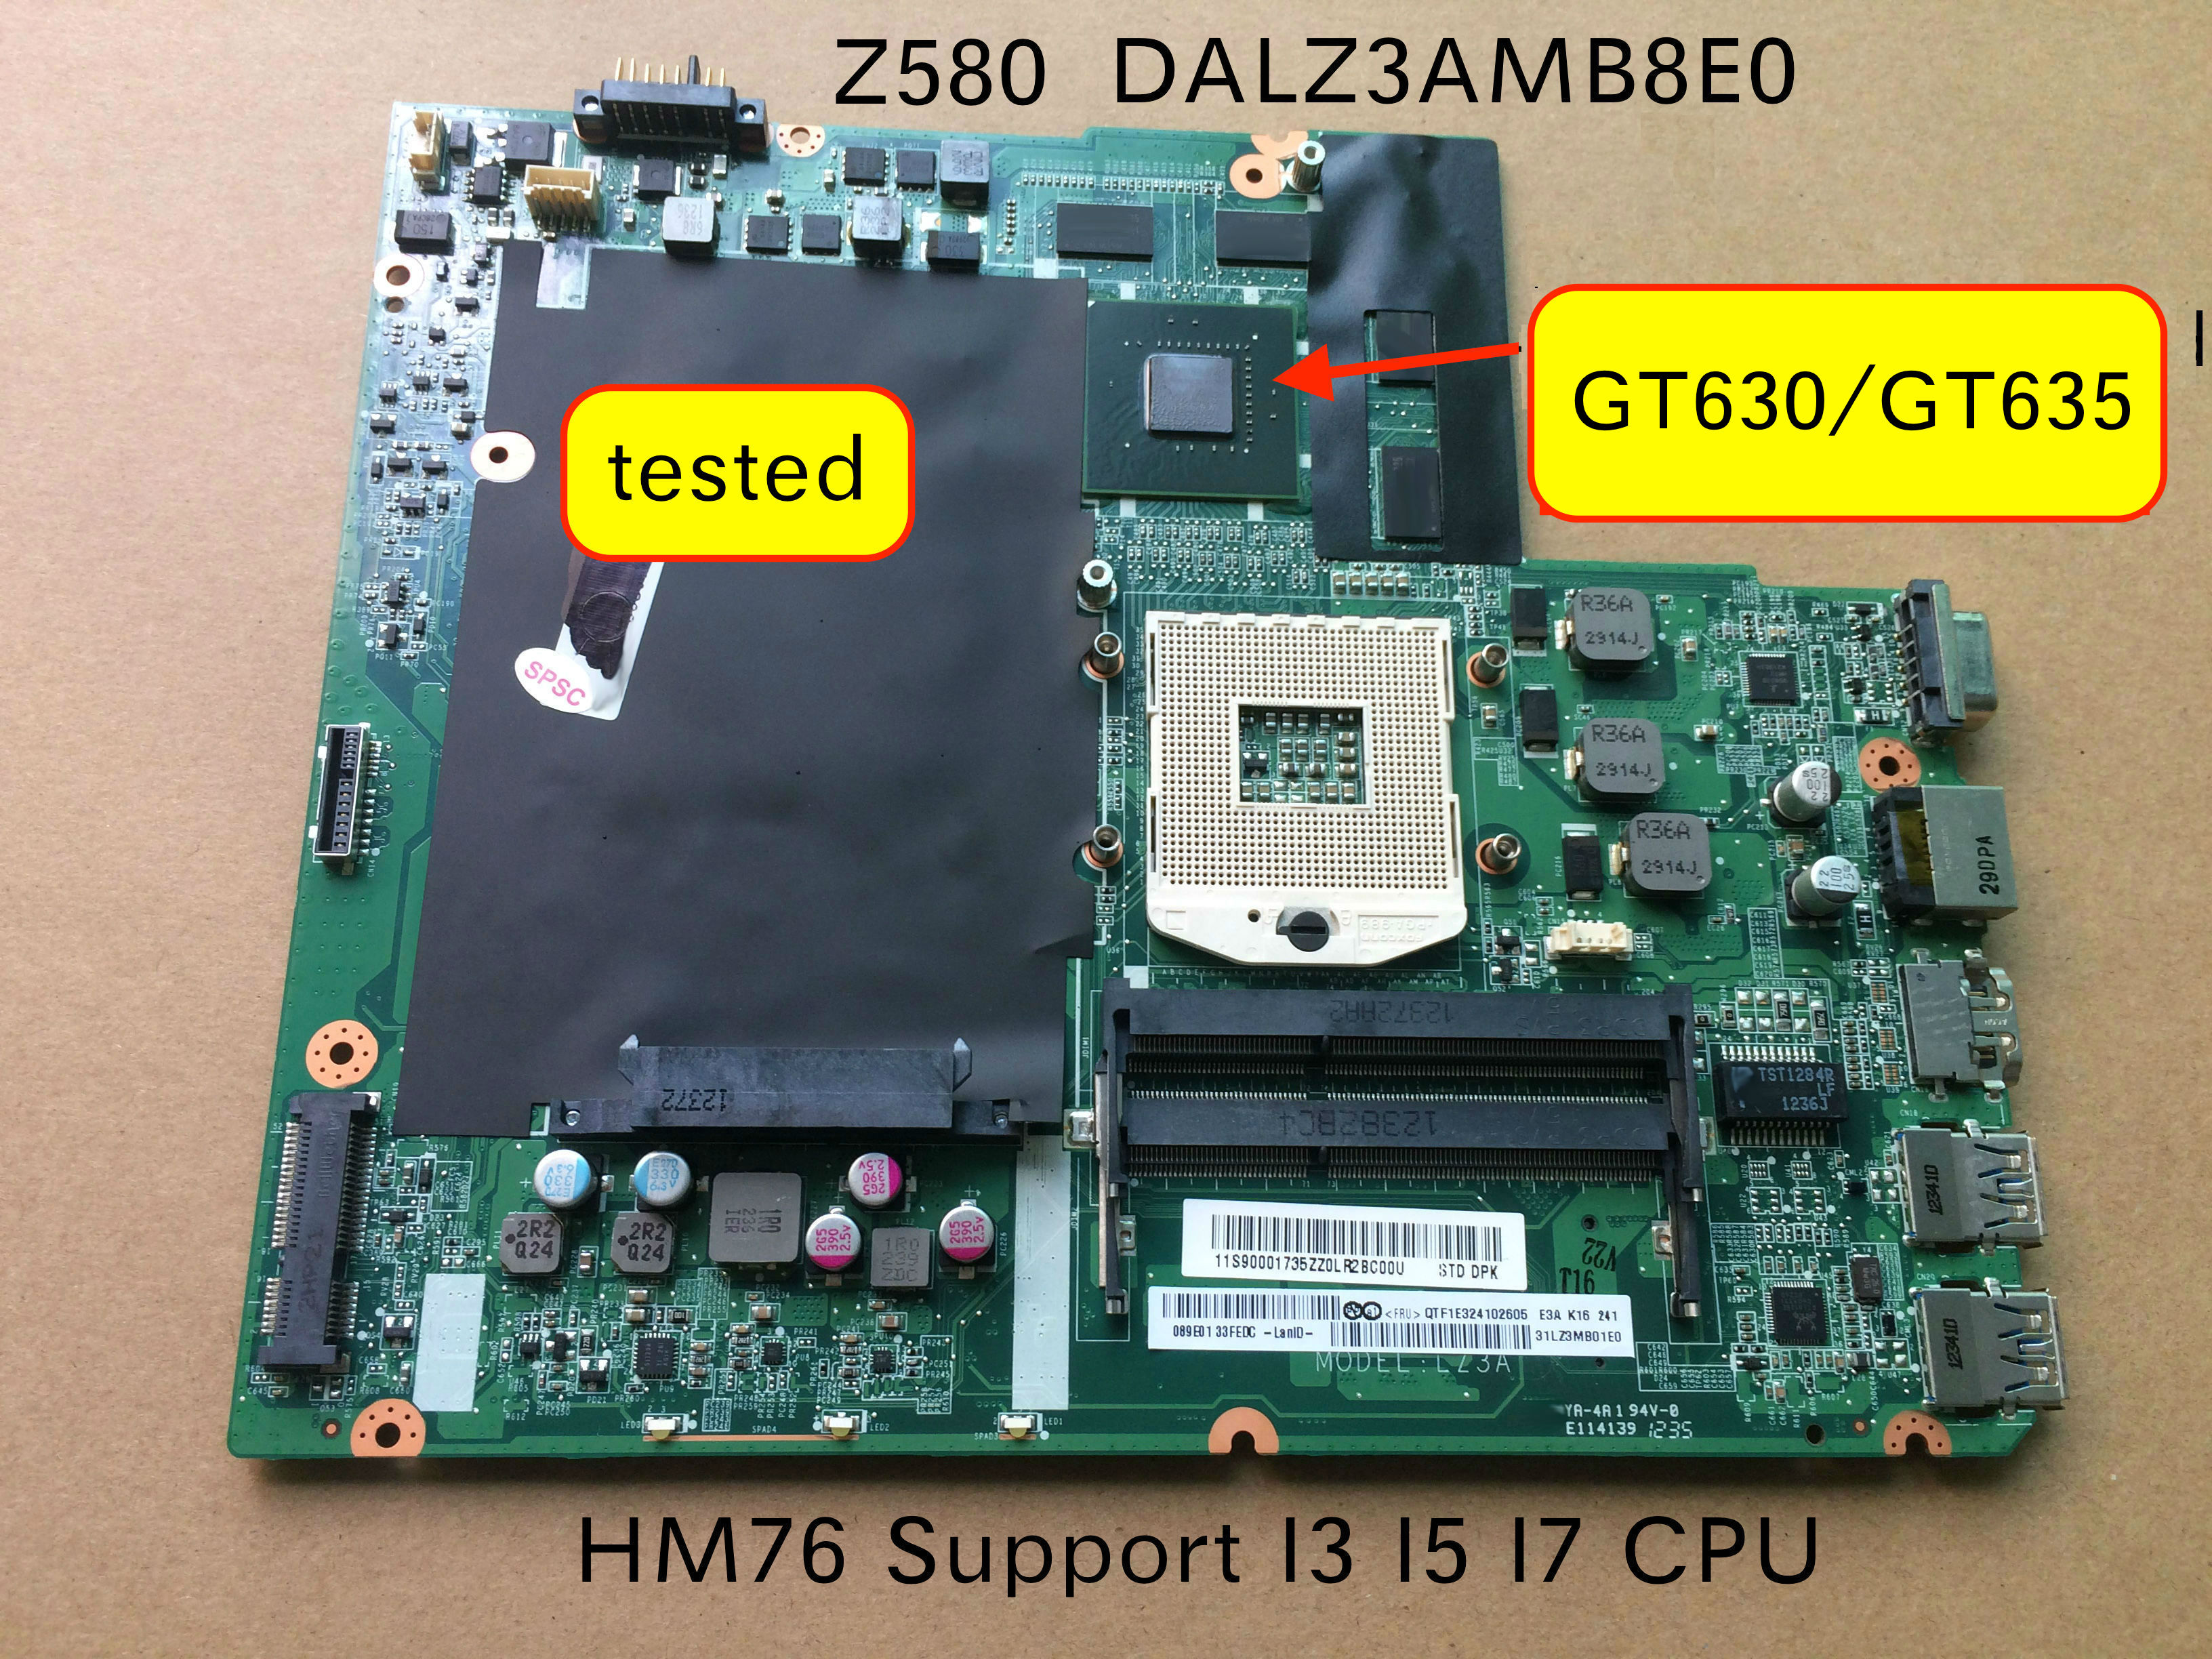 Original Laptop Motherboard For Lenovo Ideapad Z580 DALZ3AMB8E0 GT630M GT635M video card